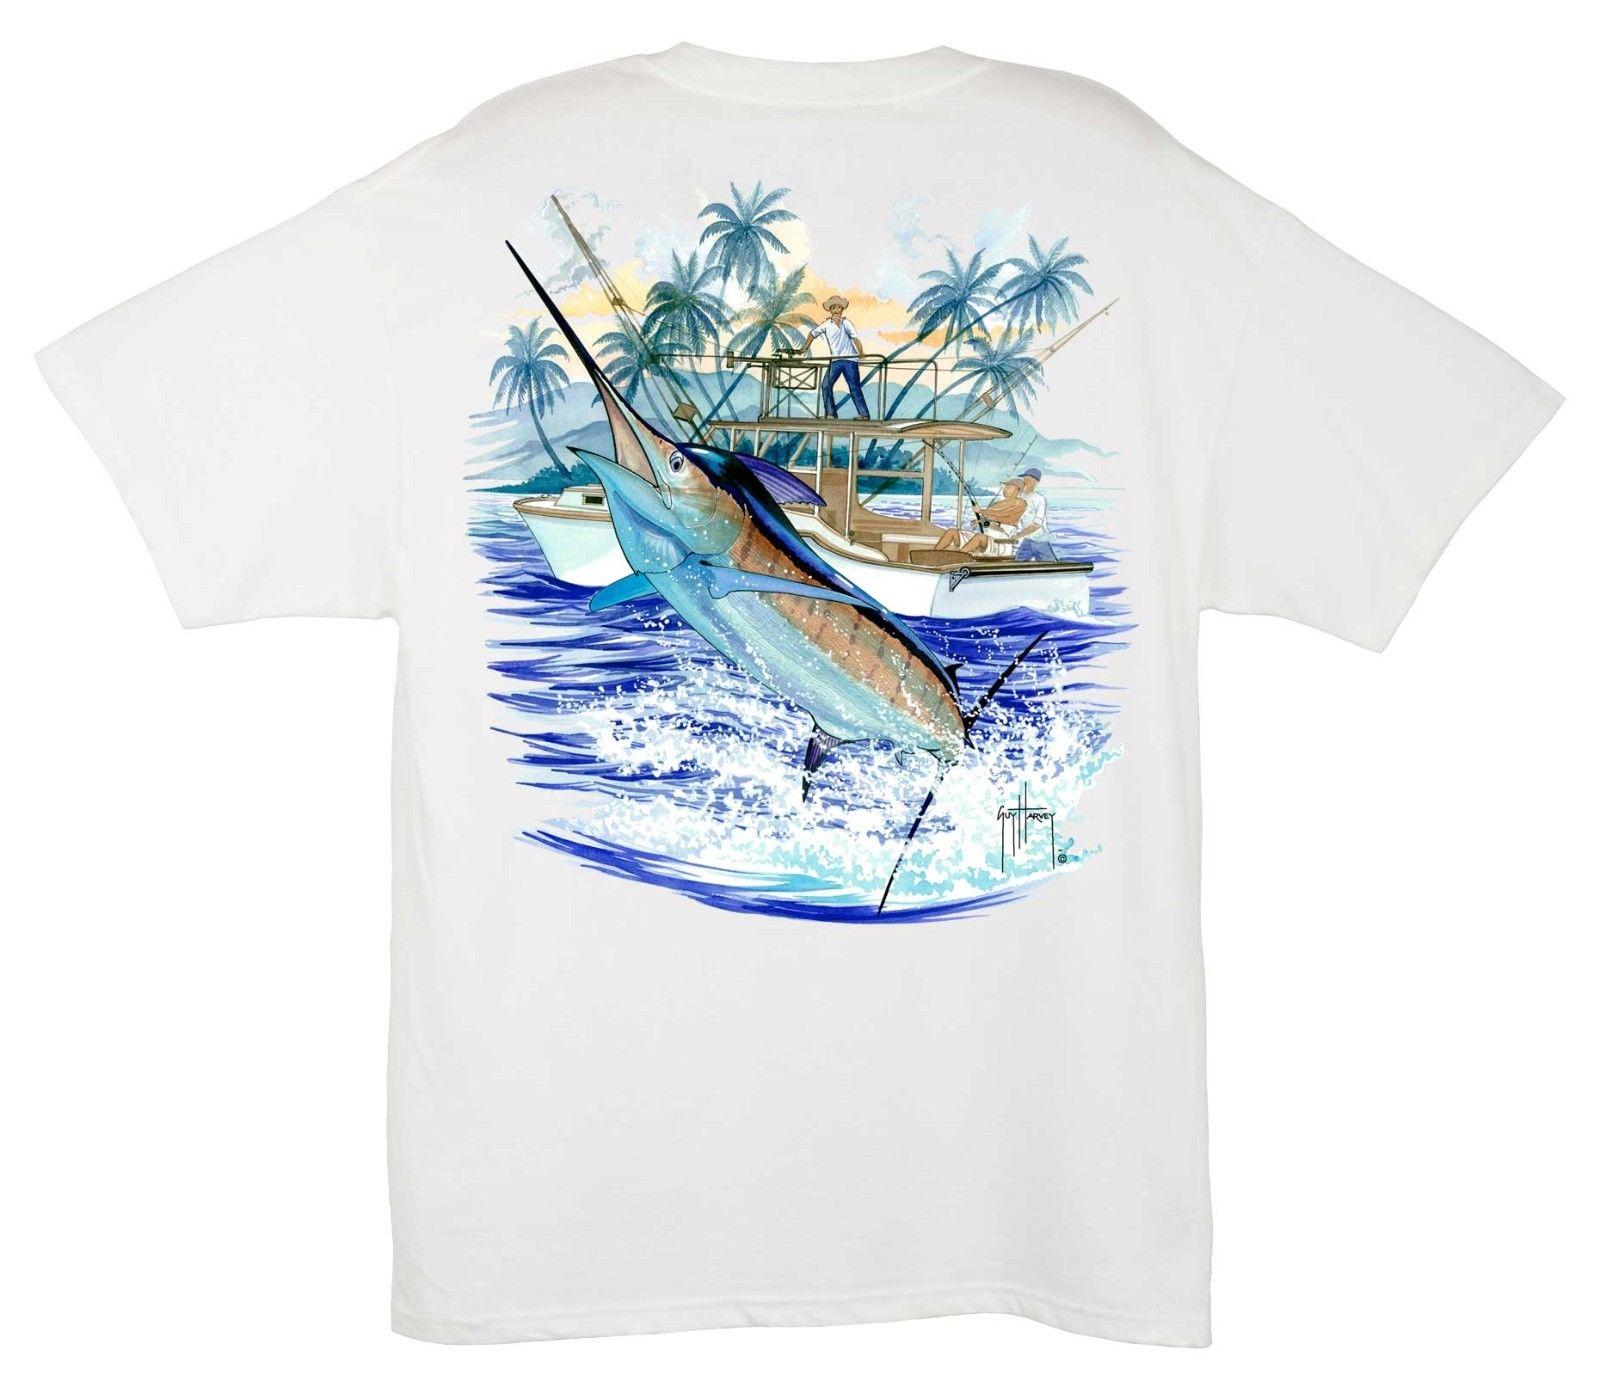 c31338468 Guy Harvey Men's Marlin and Boat 2 Fishing Pocket T-shirt. Pick  Size...White..3X Funny free shipping Unisex Casual Tshirt top